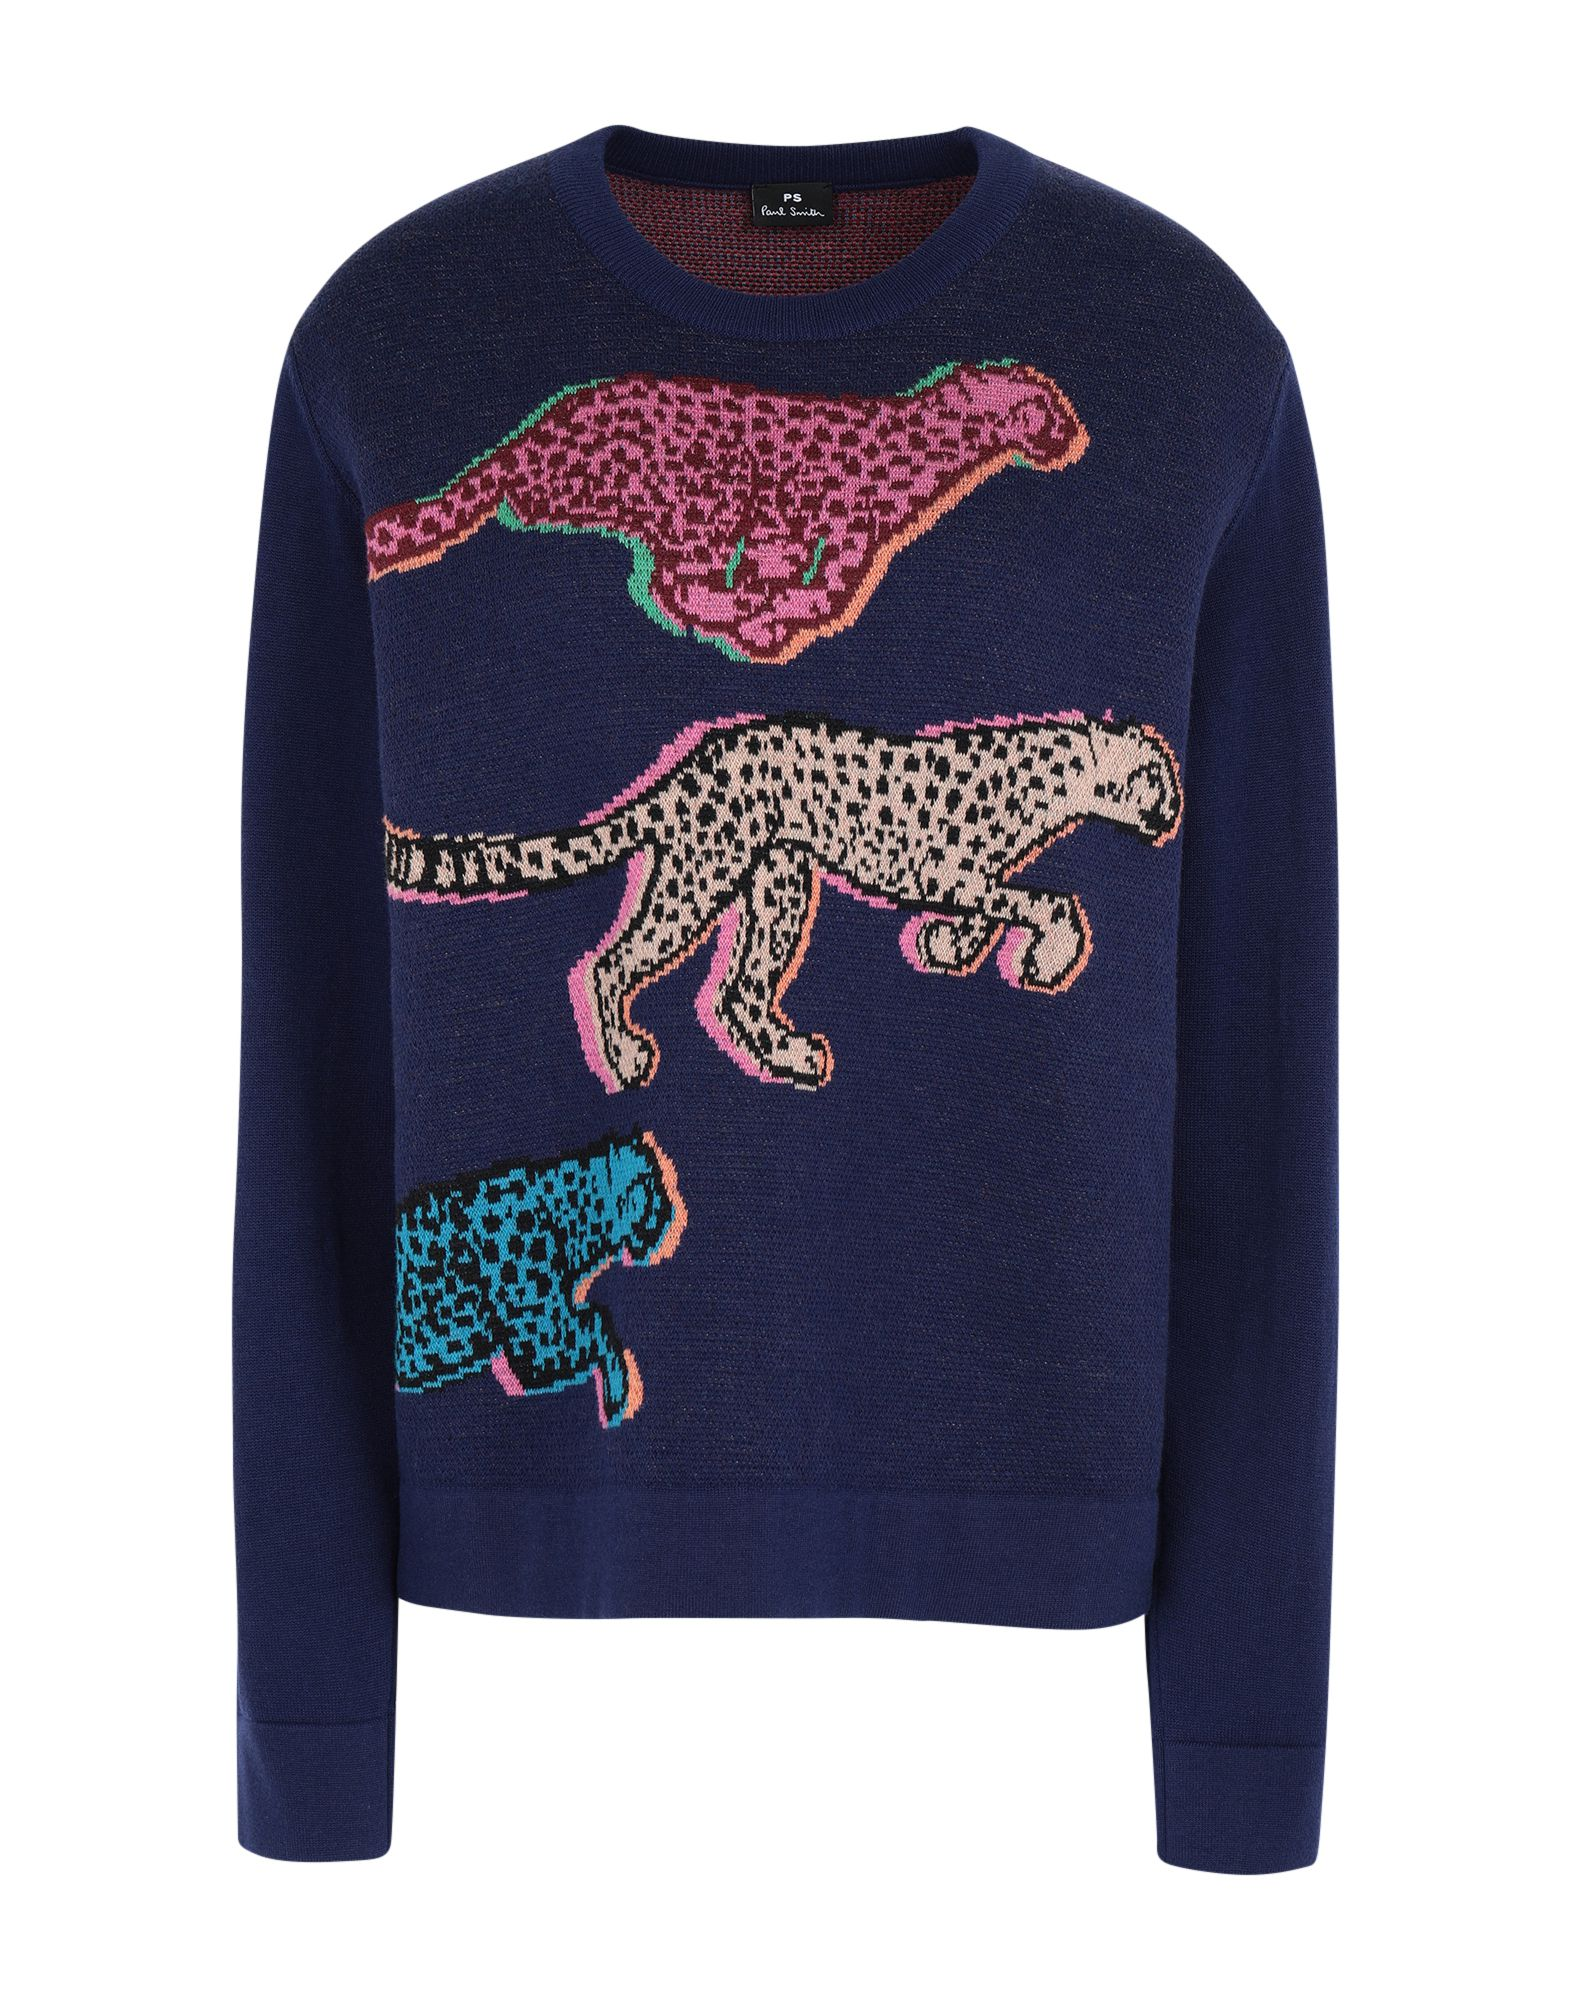 Pul r Ps Paul Smith donna Knitted Jumper - - donna - 39986100VR  Angebot speichern